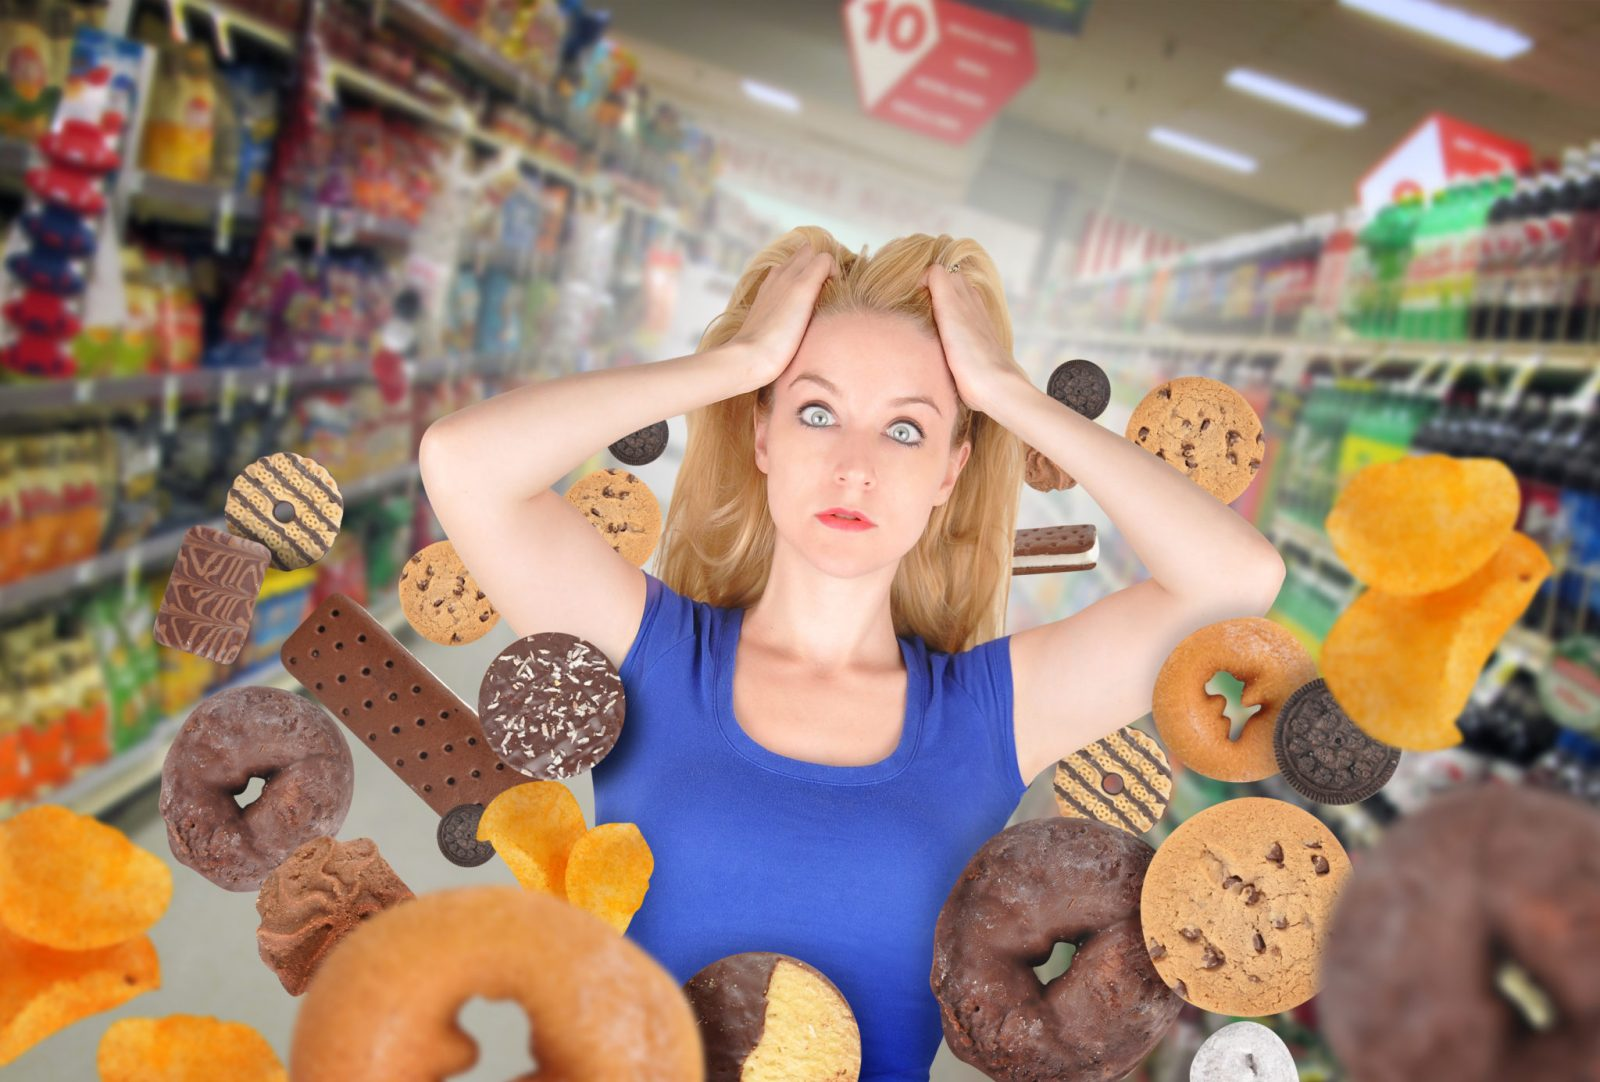 woman facing temptation of donuts and sweets while shopping in the supermarket